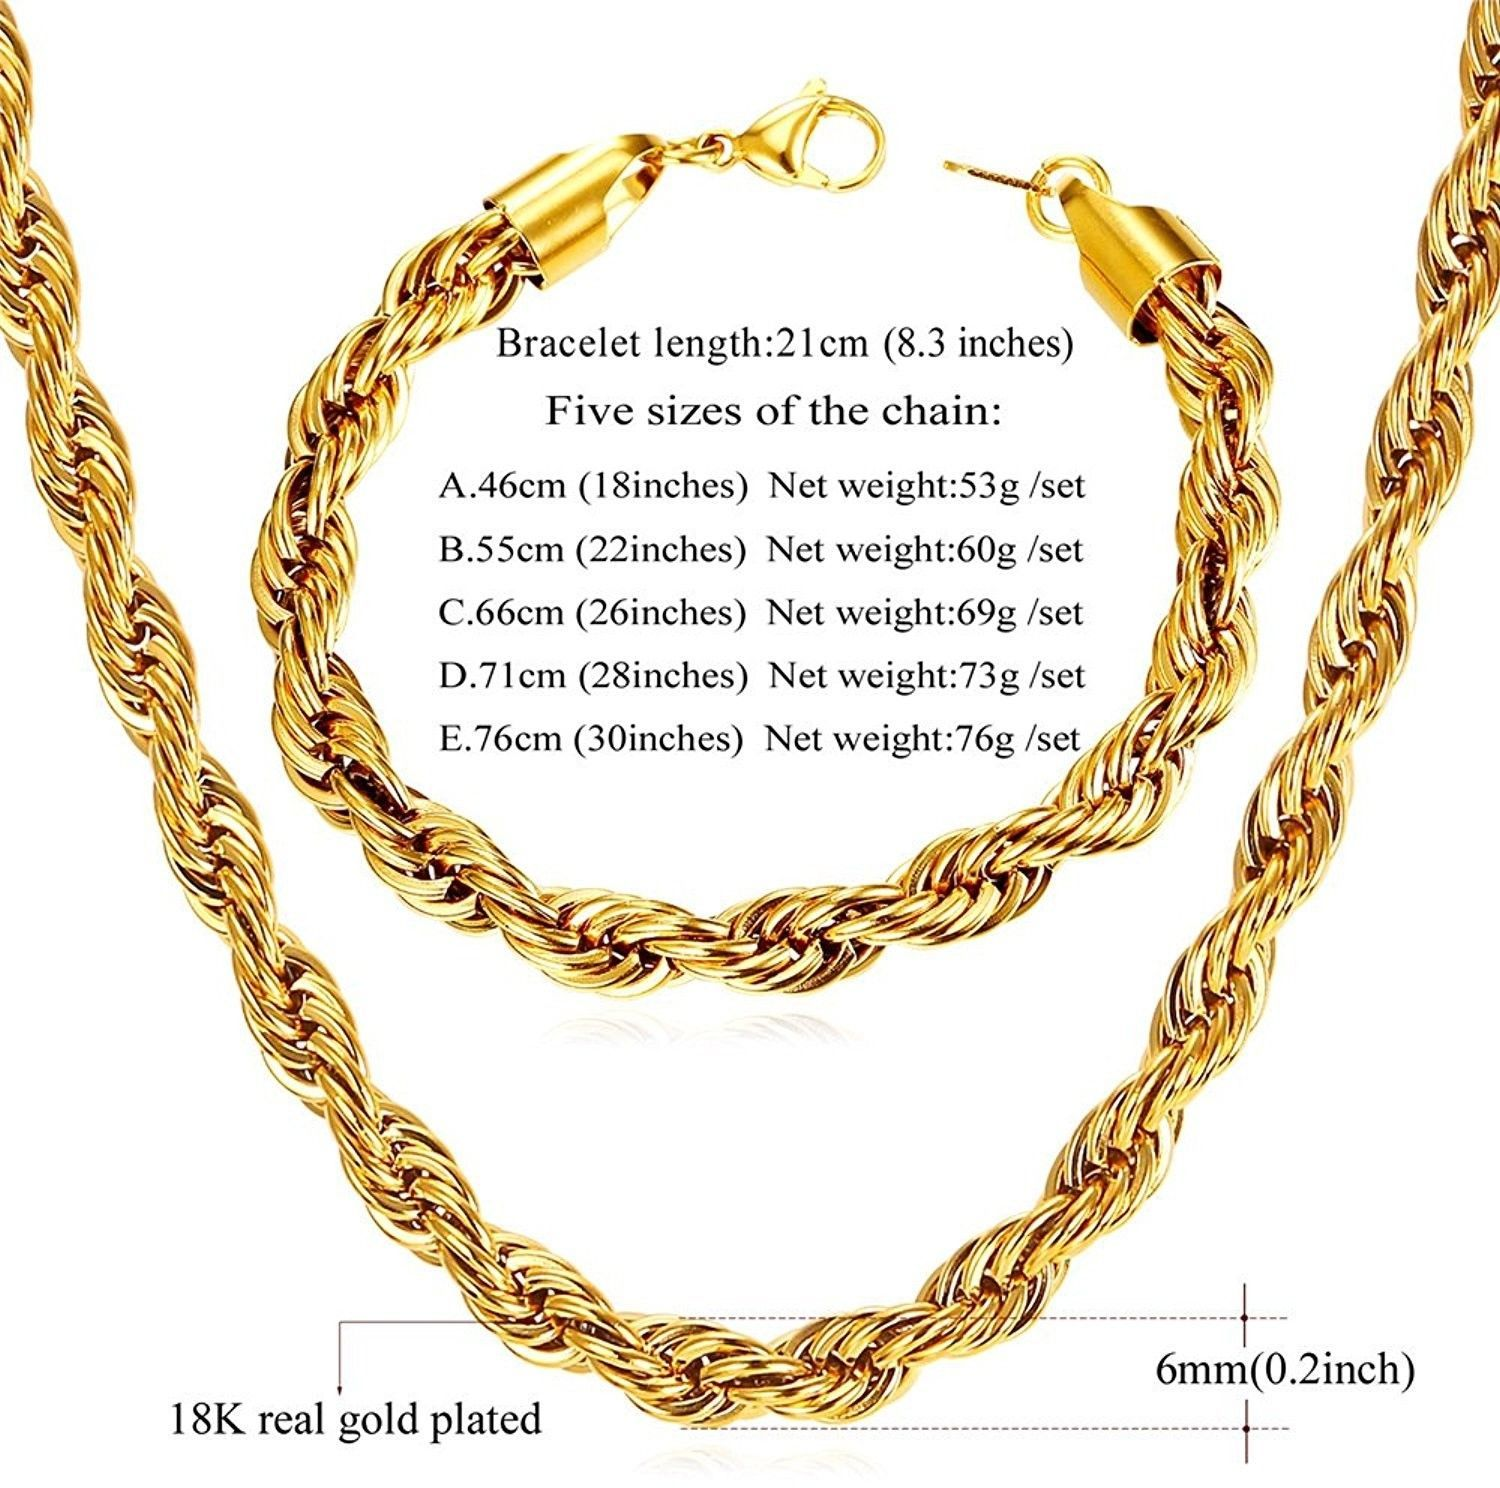 f1d7db8a39b9a U7 Rope Chain 6mm Wide 18K Gold Plated and 50 similar items